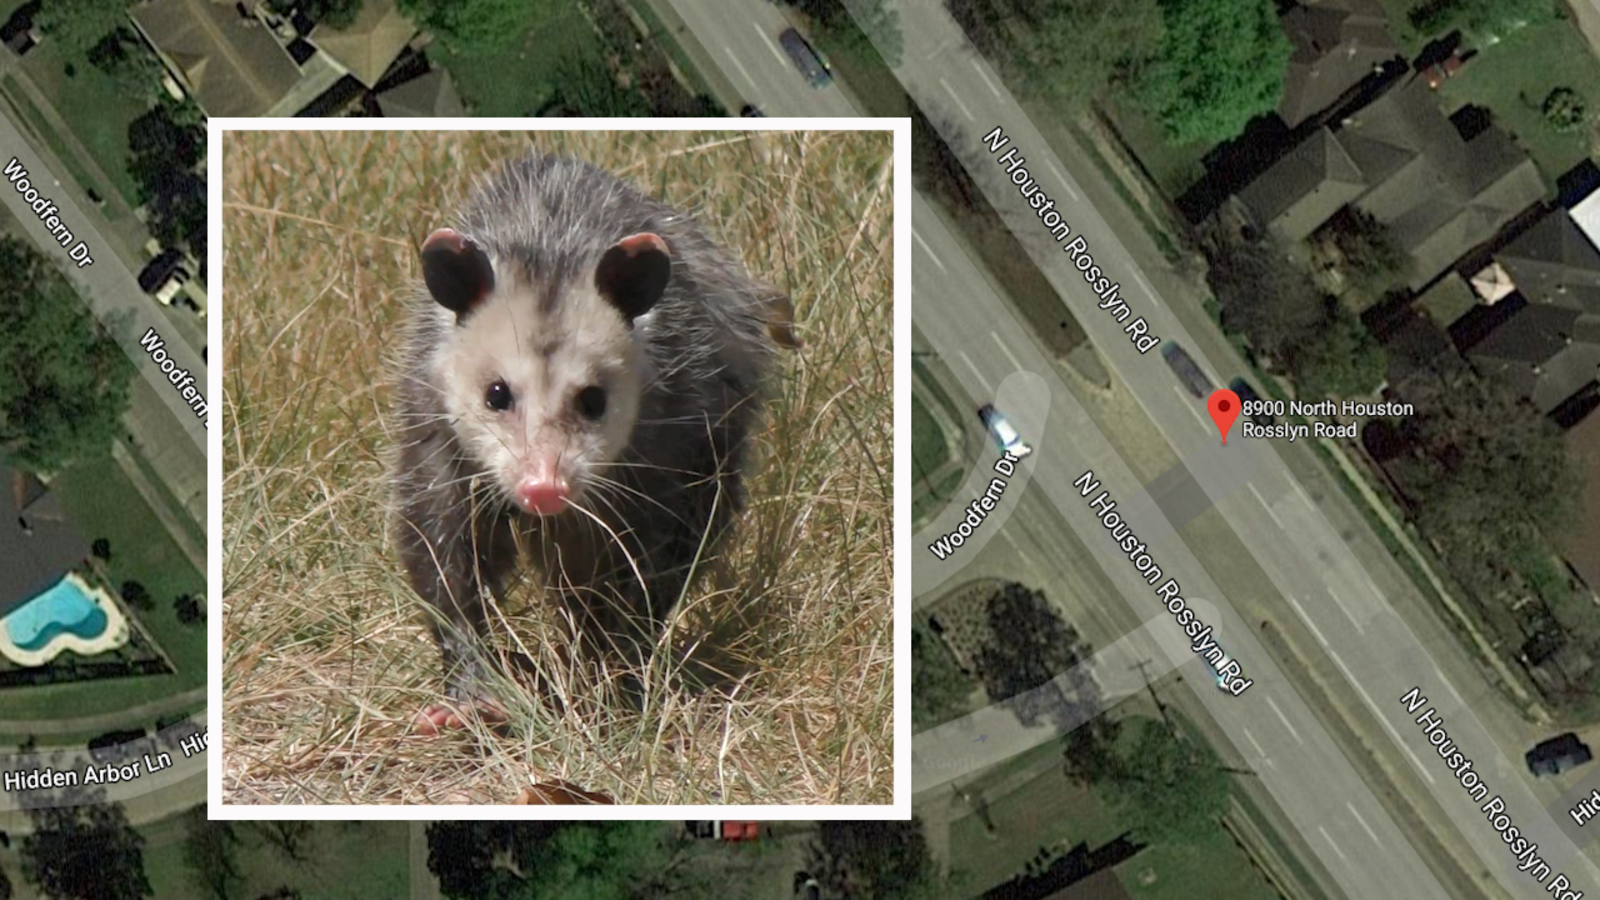 How To Get Rid Of A Possum In Your Garage intoxicated man hit and killed while trying to pick opossum up on side of  road